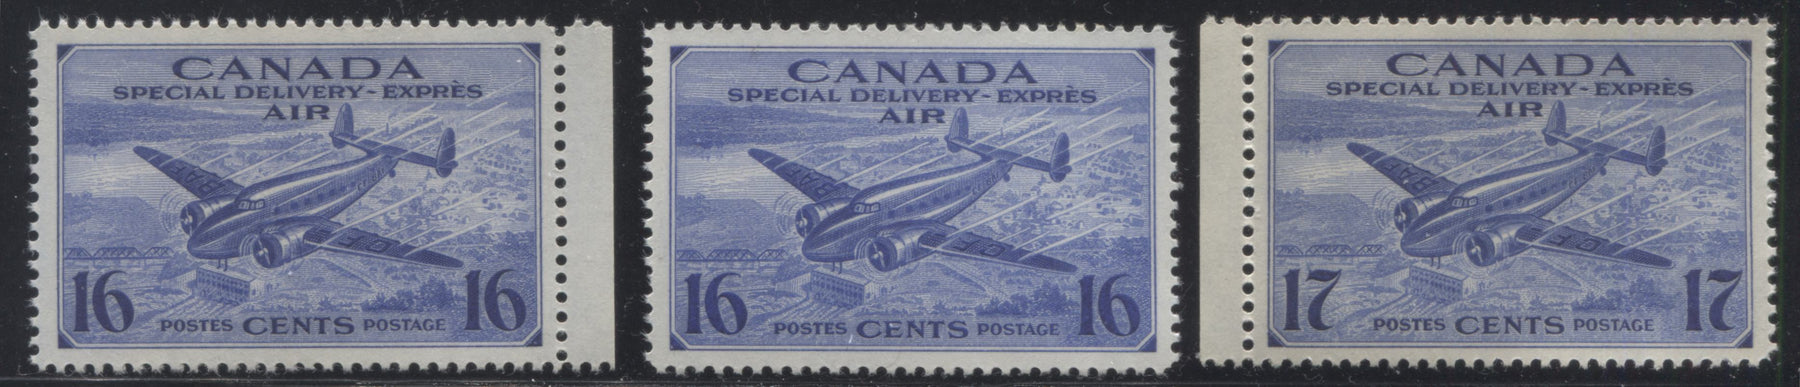 Canada #CE1-2 16c-17c Deep Ultramarine Trans Canada Airplane, 1942-1949 War Issue, Three Very Fine NH Singles, Showing 2 Shades of the 16c Brixton Chrome